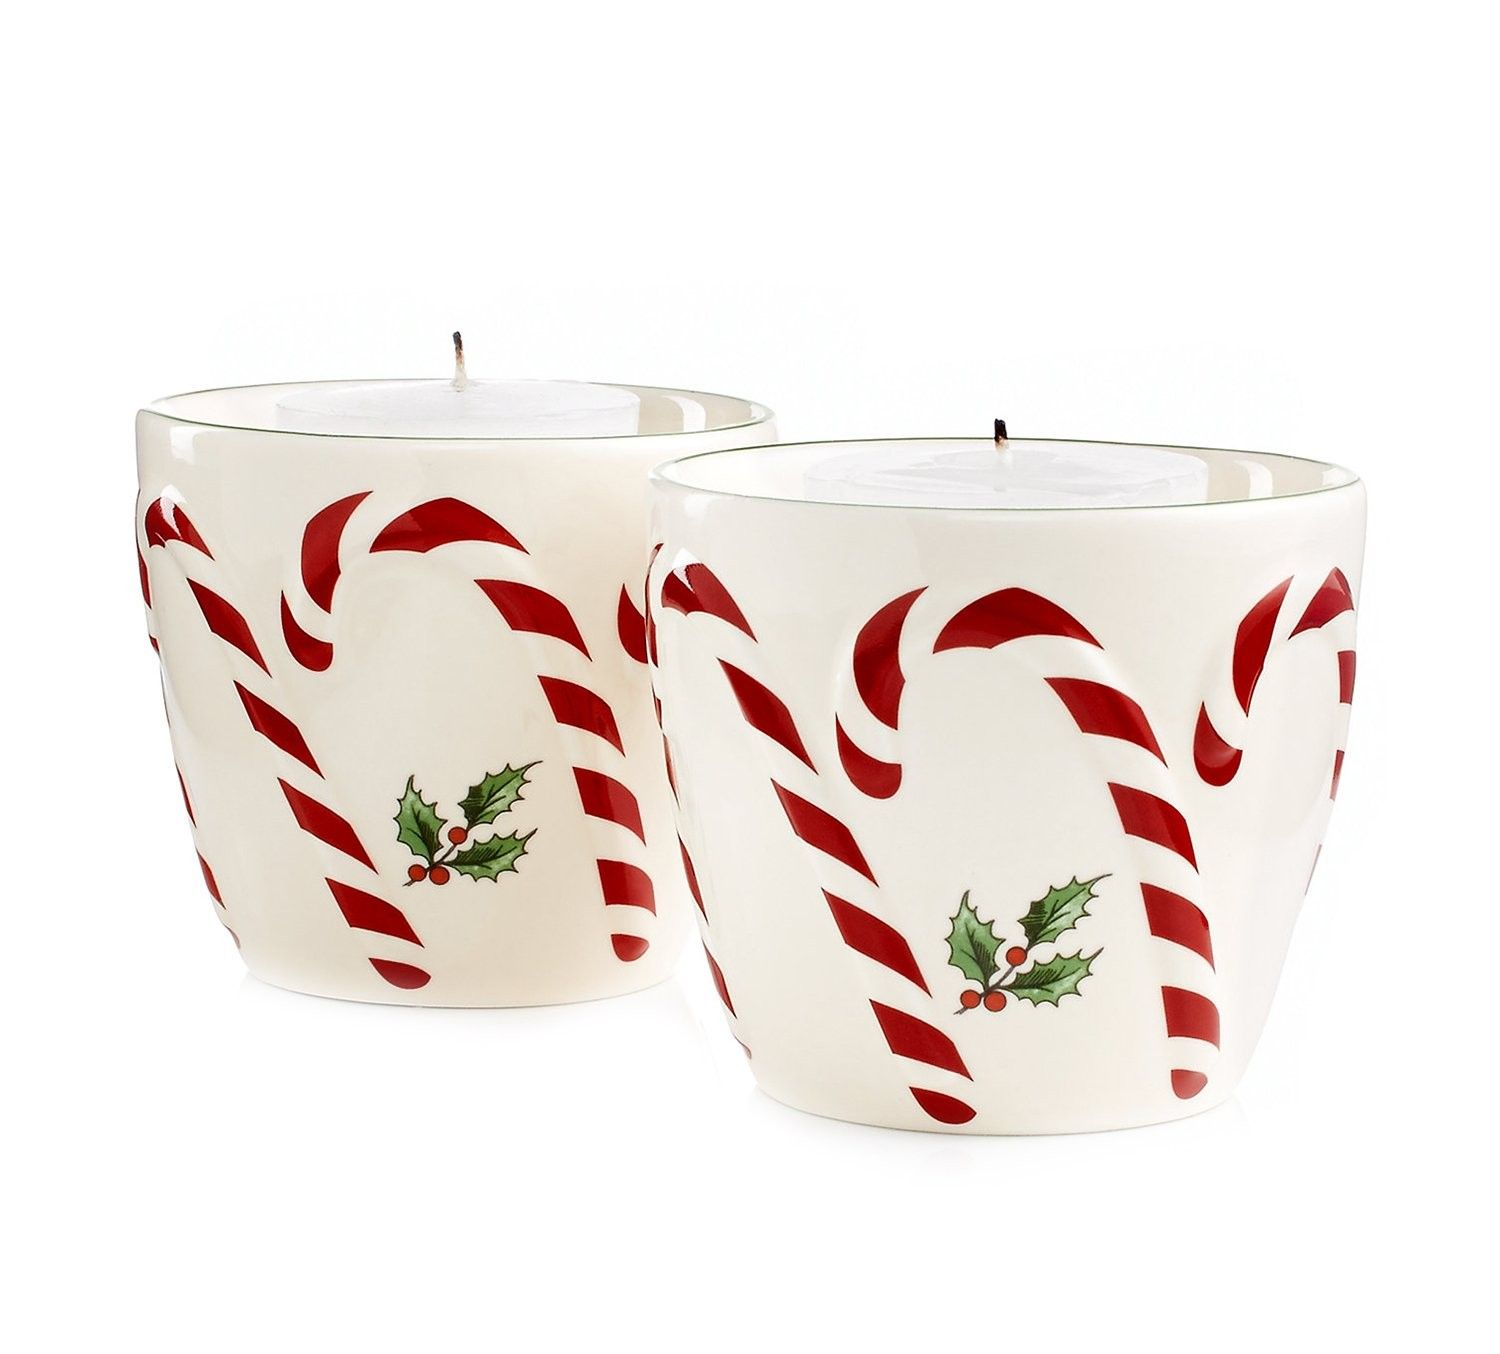 Spode Christmas Tree Candle Holder: Serveware Peppermint Embossed Candy Votives With Tealights